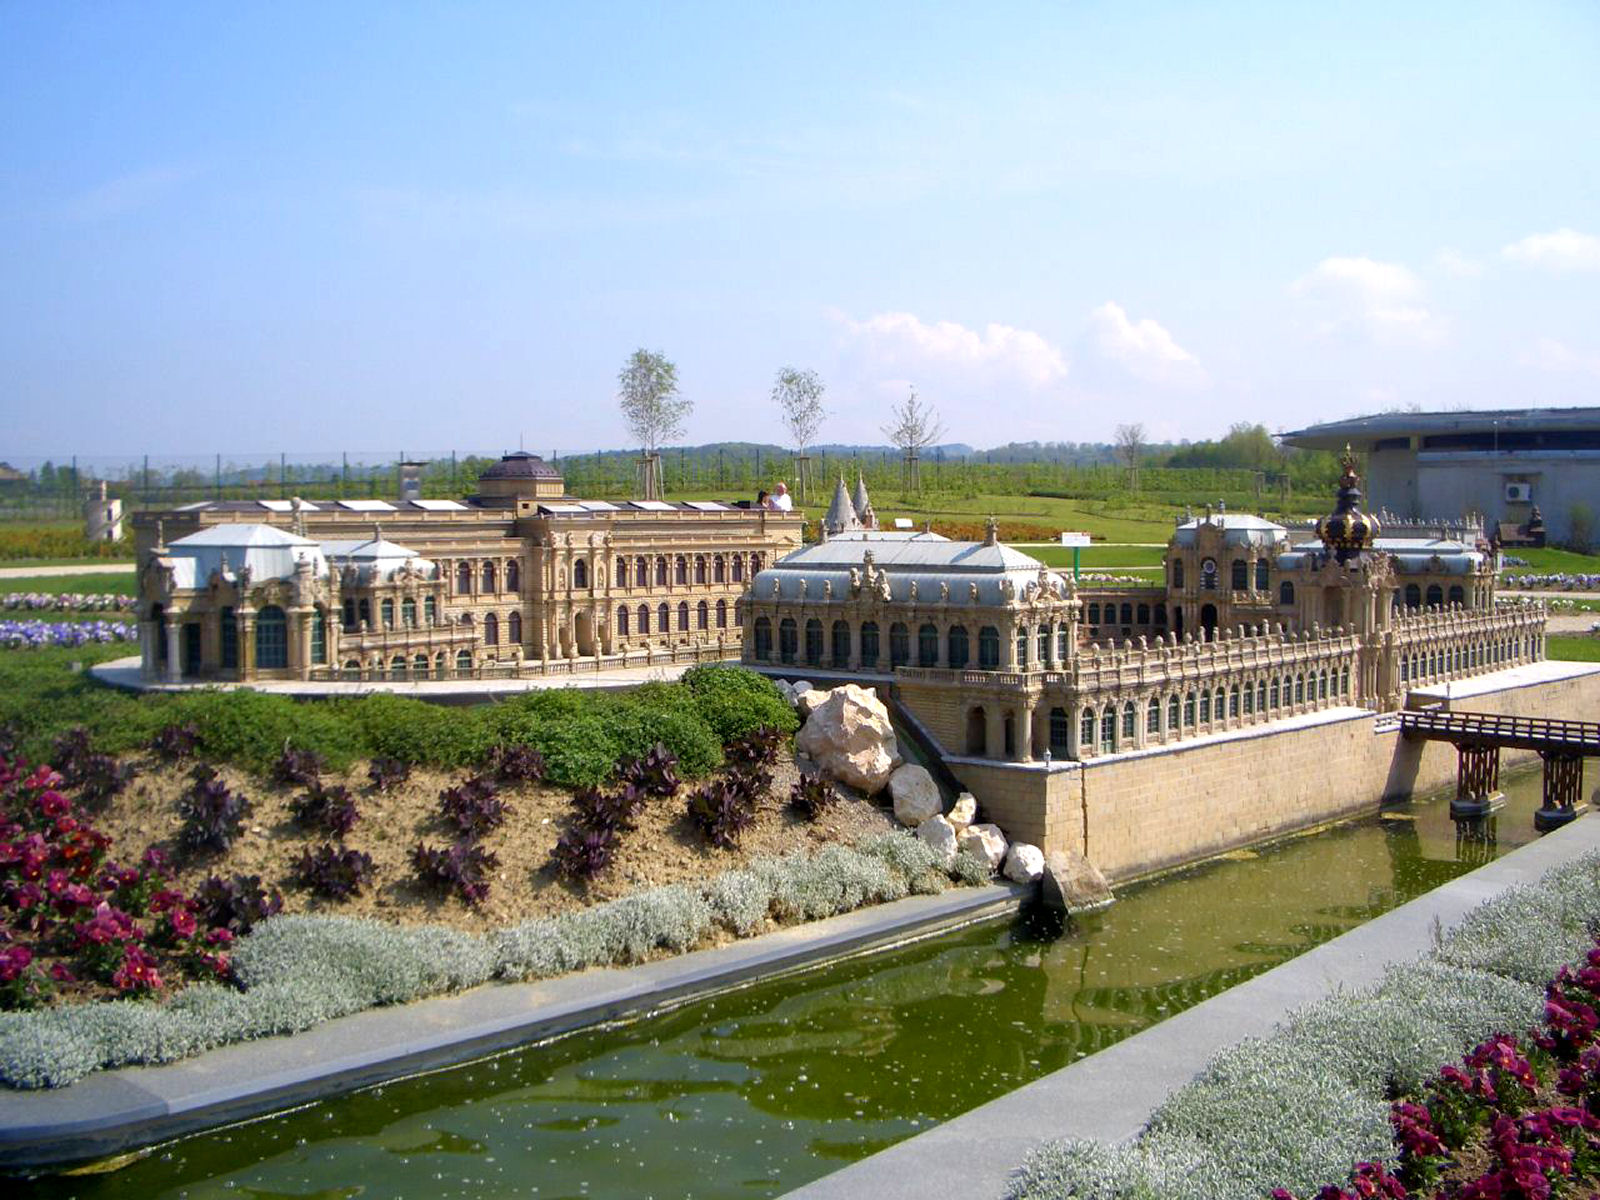 Model of the Dresden's Zwinger palace at Minimundus, Klagenfurt, Austria